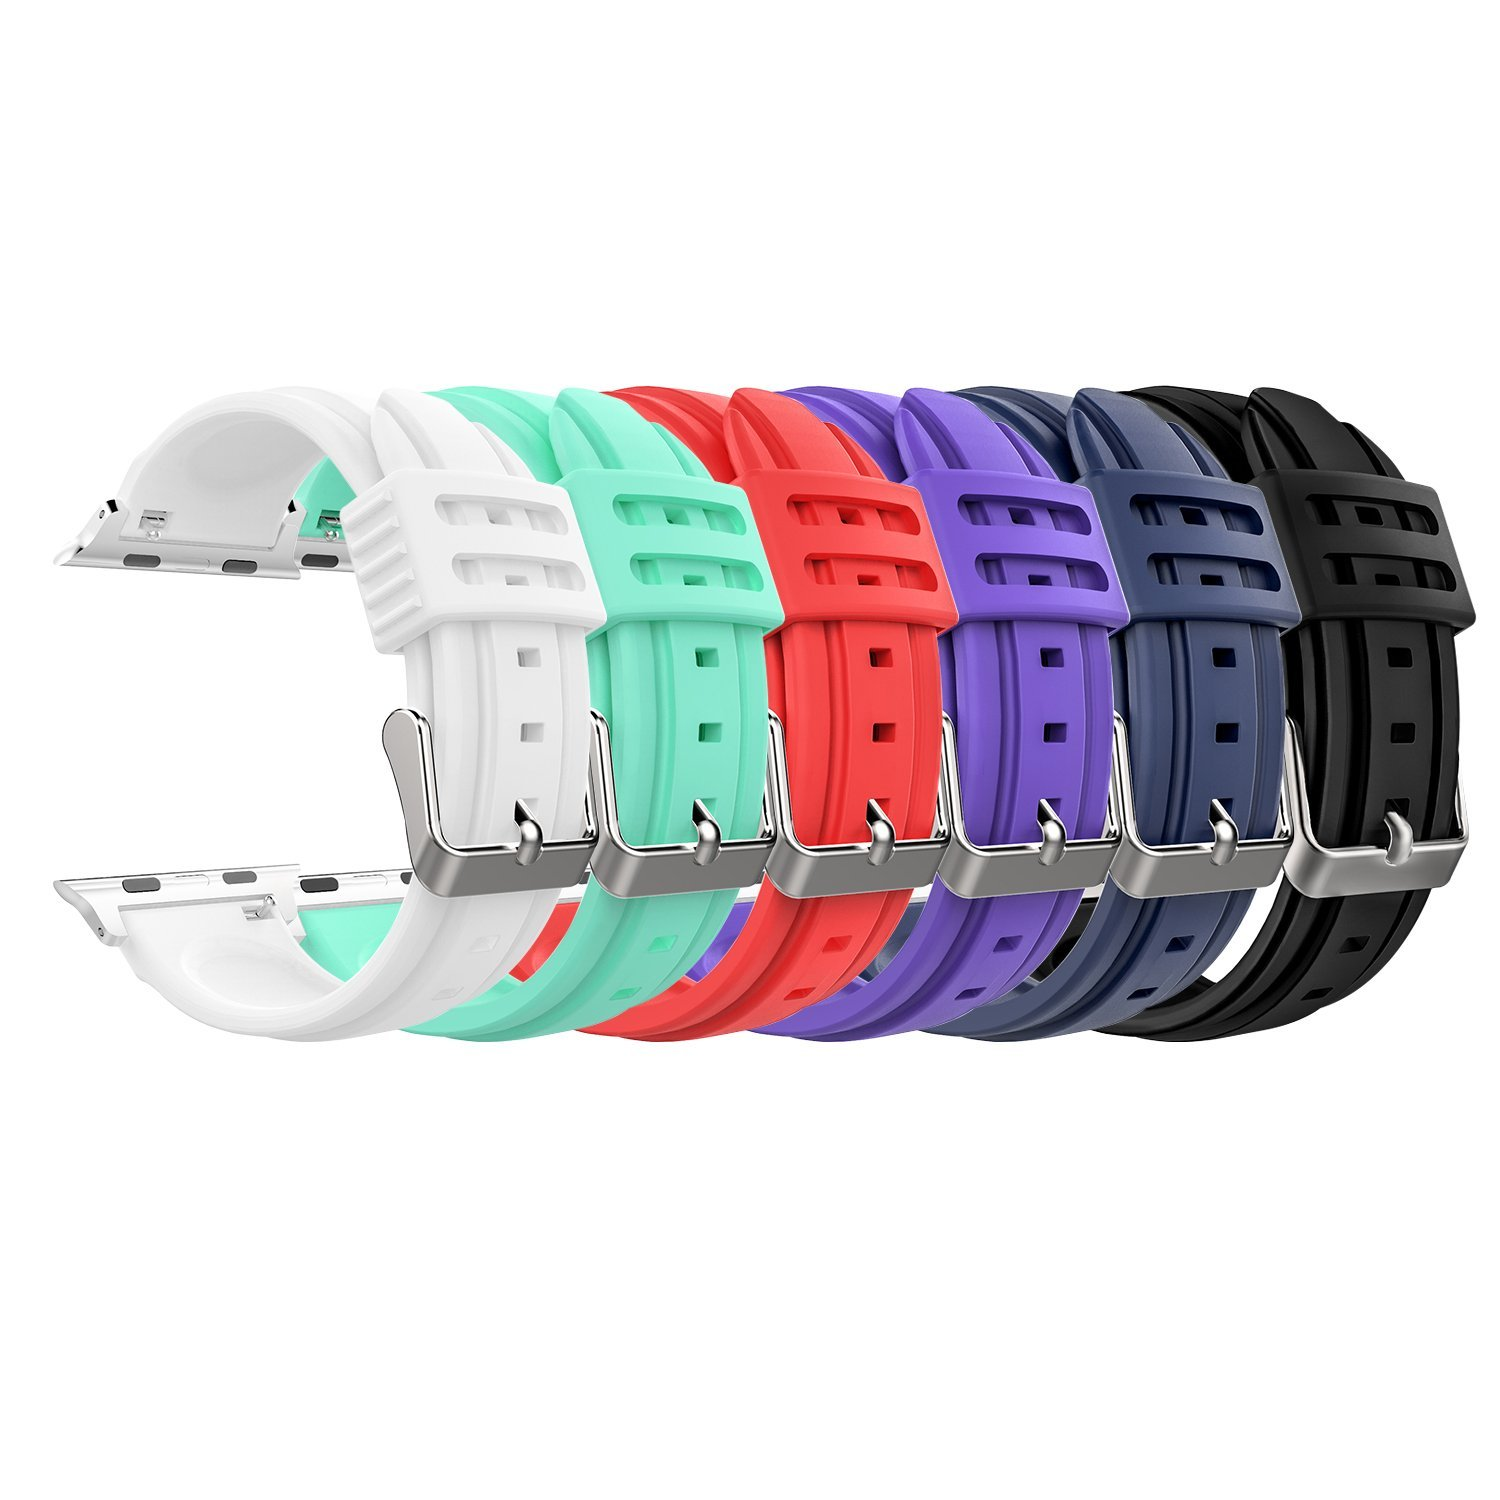 MoKo Apple Watch Band Series 1 Series 2, [6 PACK] Soft Silicone Replacement Sports Band + Watch Lugs for Apple Watch 38mm 2015 Series 1 & 2016 Series 2 All Models, Multi Colors (Not fit 42mm Versions)